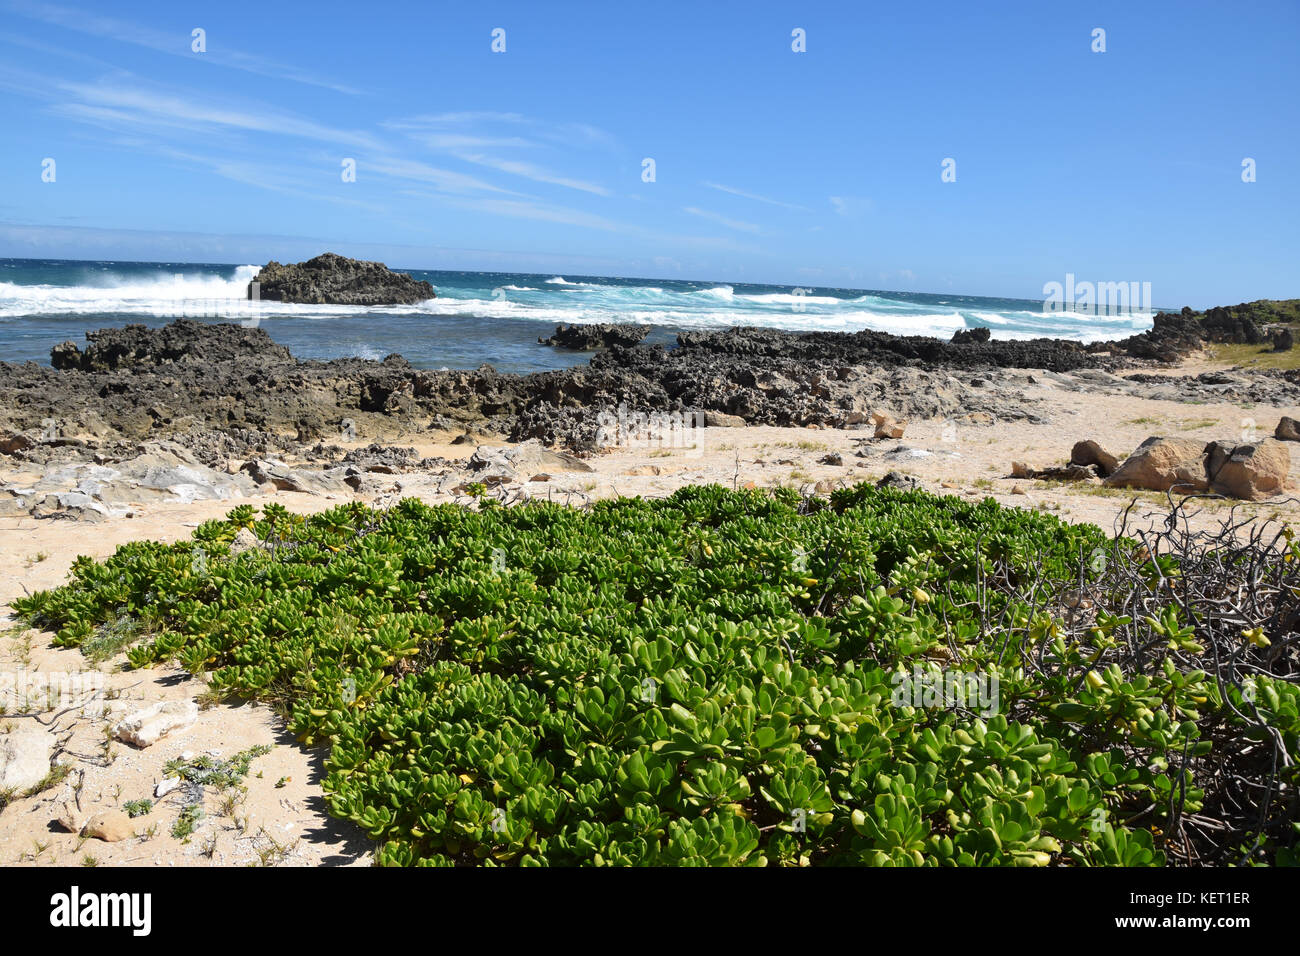 The surf rolls in over the Kahuku Shoreline on Oahu, Hawaii's North Shore - Stock Image